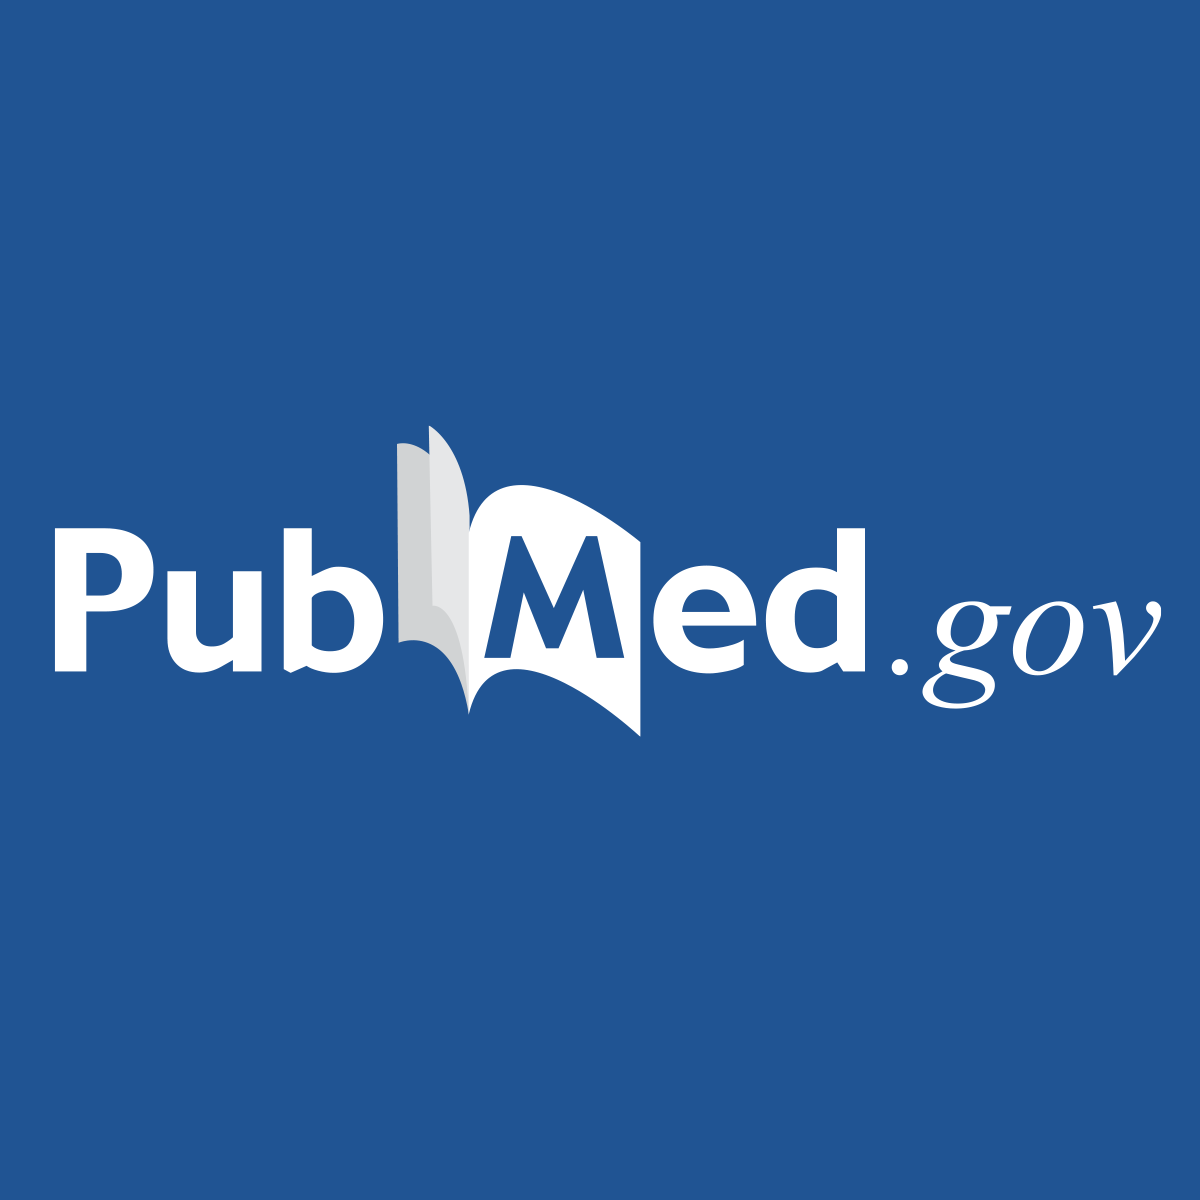 Increased Detection of Suspected Atrial Fibrillation in Elderly and Female Hypertensive Patients Through Home Blood Pressure Monitoring: The HOME-AF Study